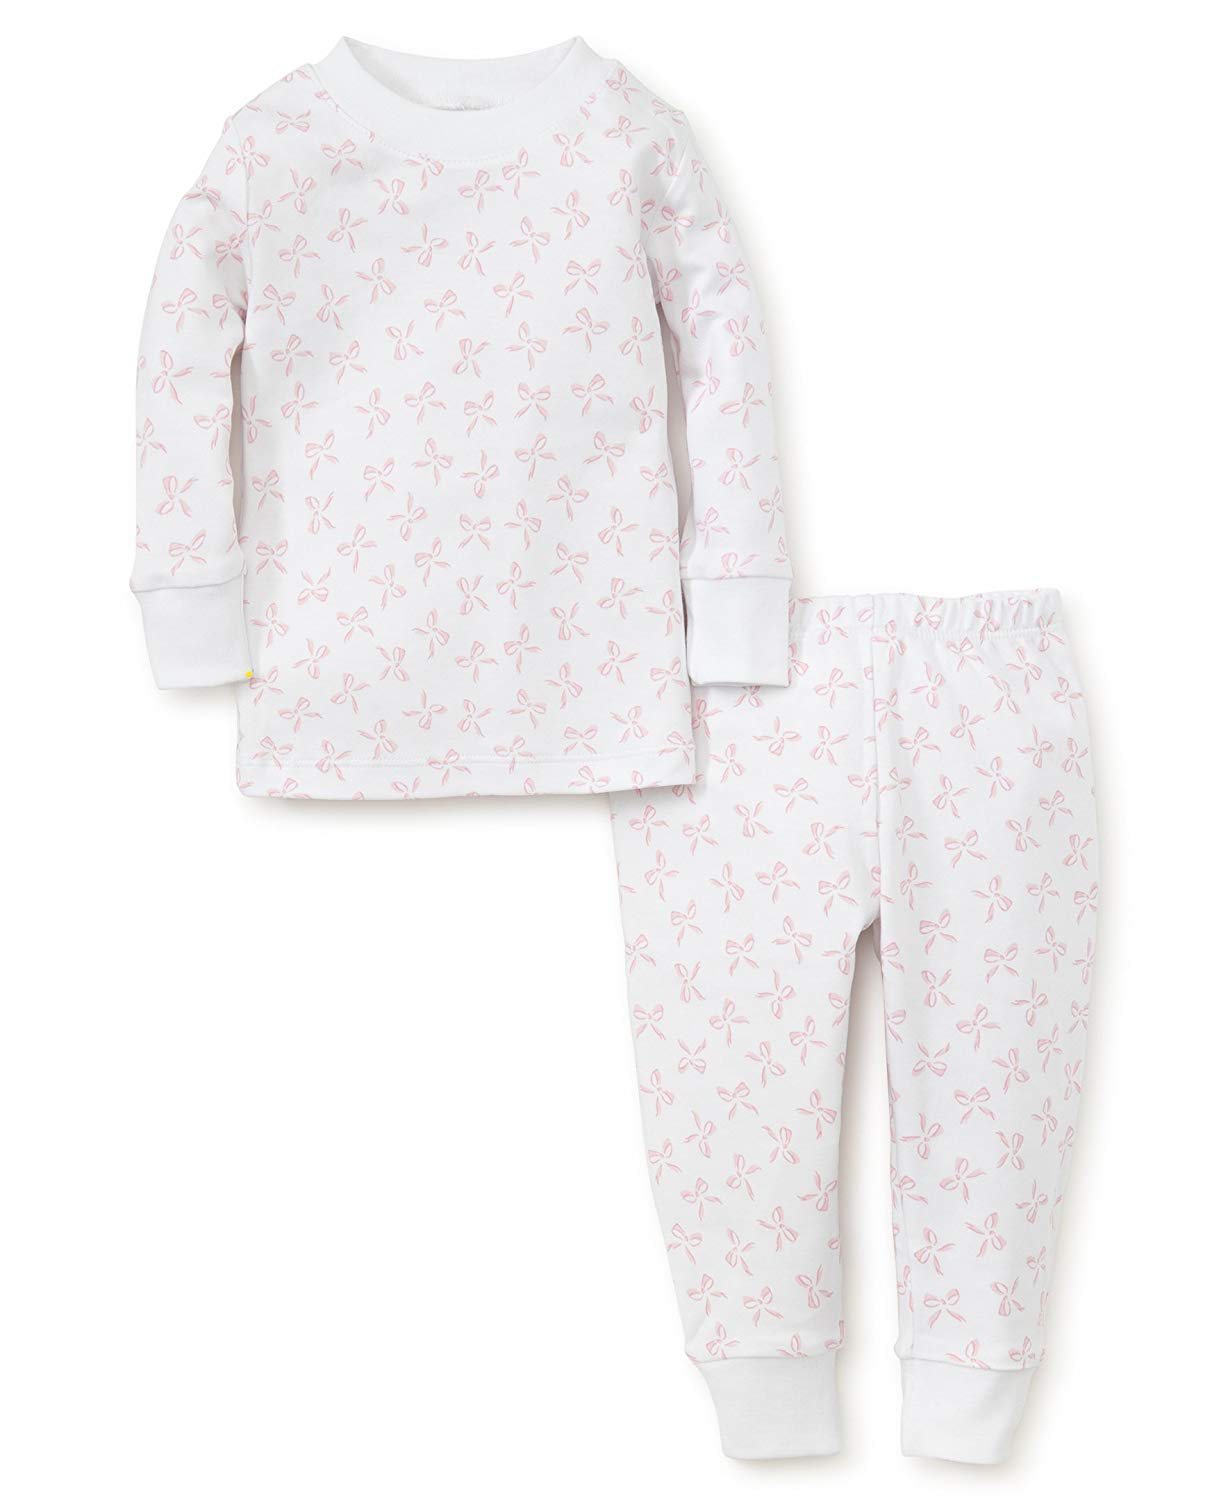 98aa6cfdc Get Quotations · Kissy Kissy Baby-Girls Infant Bunches of Bows Print Long  Pajamas Set